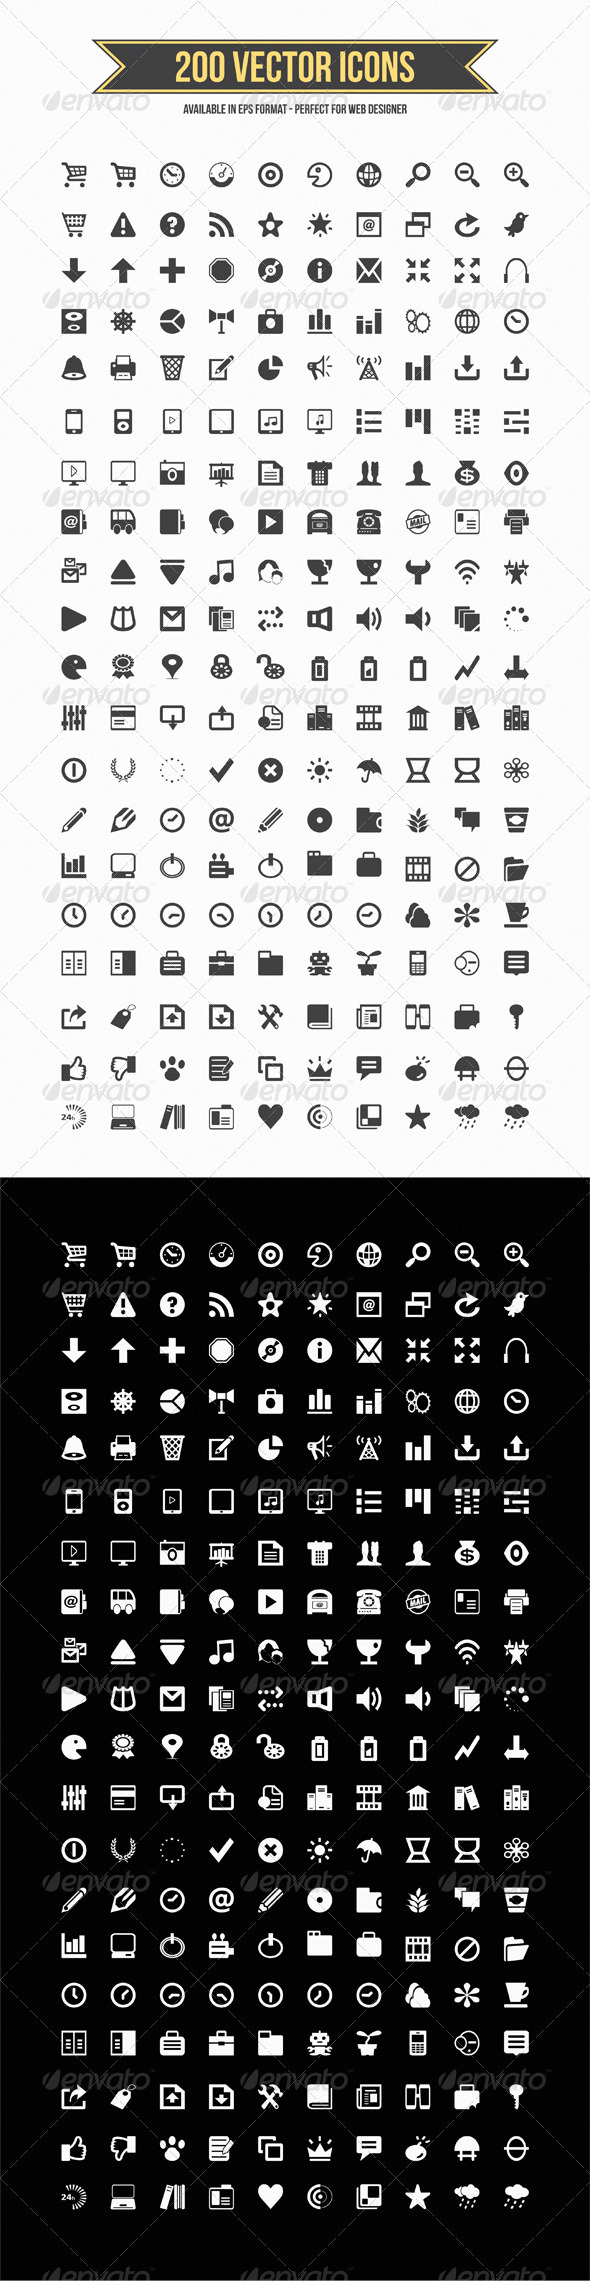 GraphicRiver 200 Vector Icons 3546593